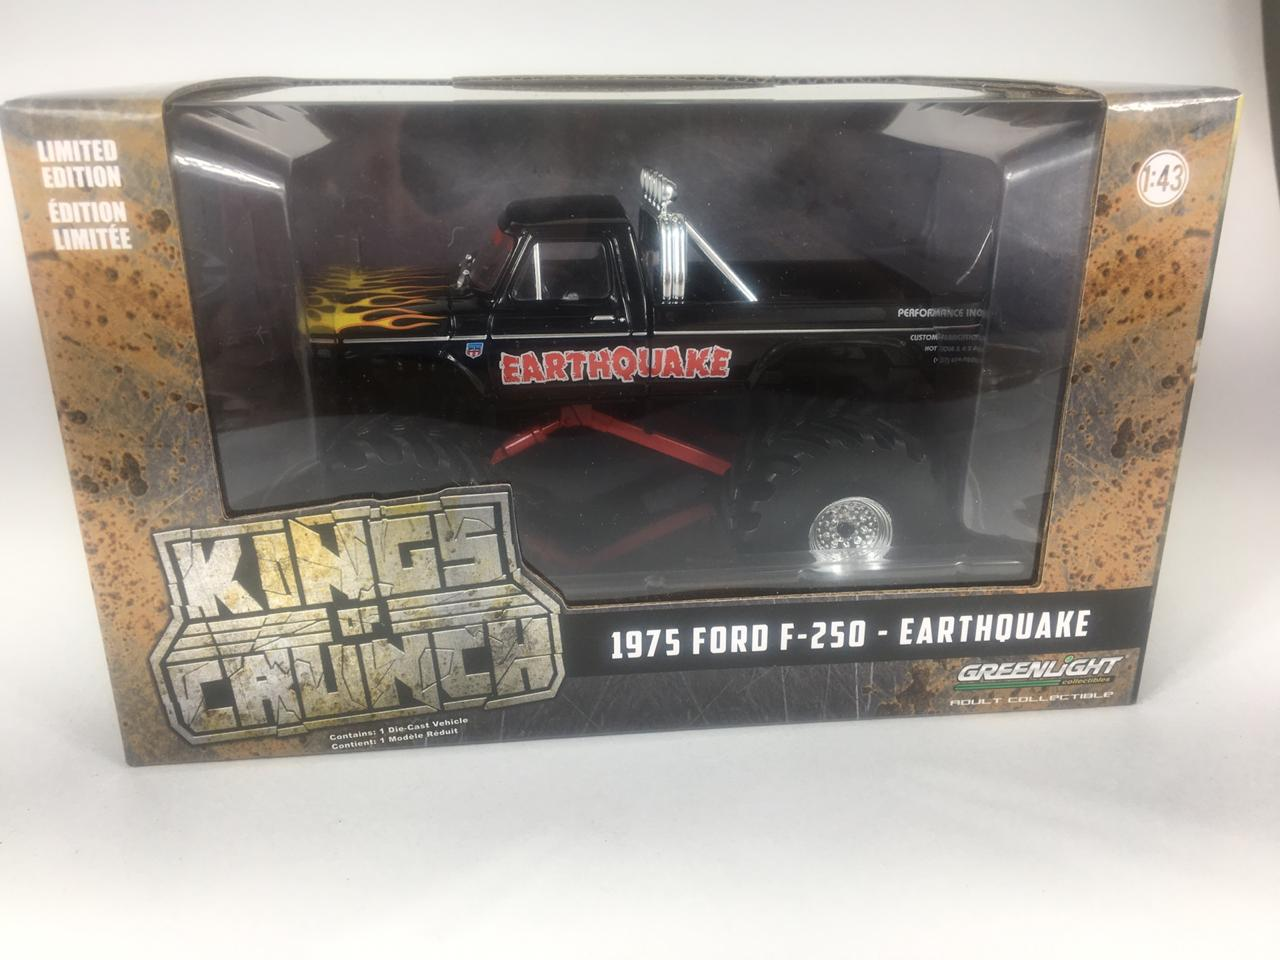 Miniatura Ford F-250 1975 Earthquake Kings of Crunch 2 1/43 Greenlight